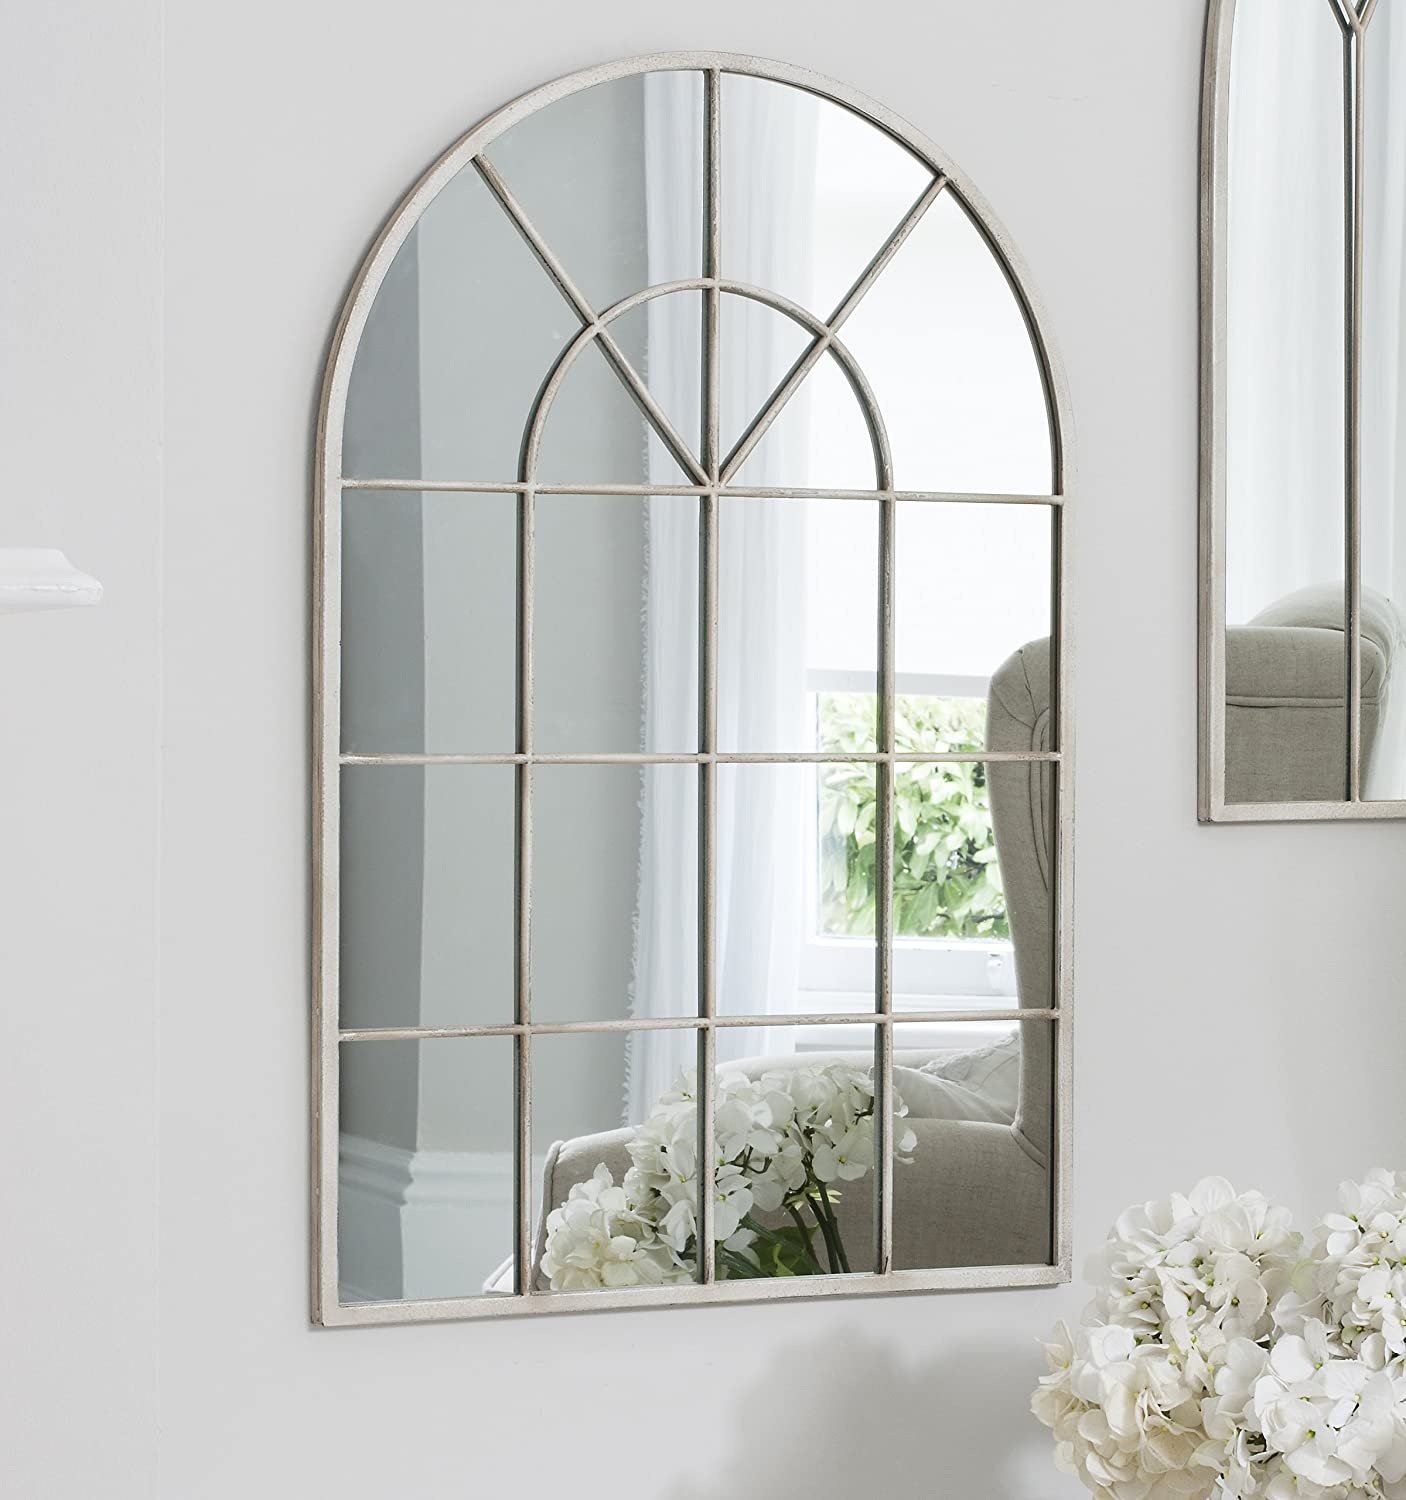 Kelford large vintage cream metal arched window wall mirror 355in x kelford large vintage cream metal arched window wall mirror 355in x 235in amazon kitchen home teraionfo